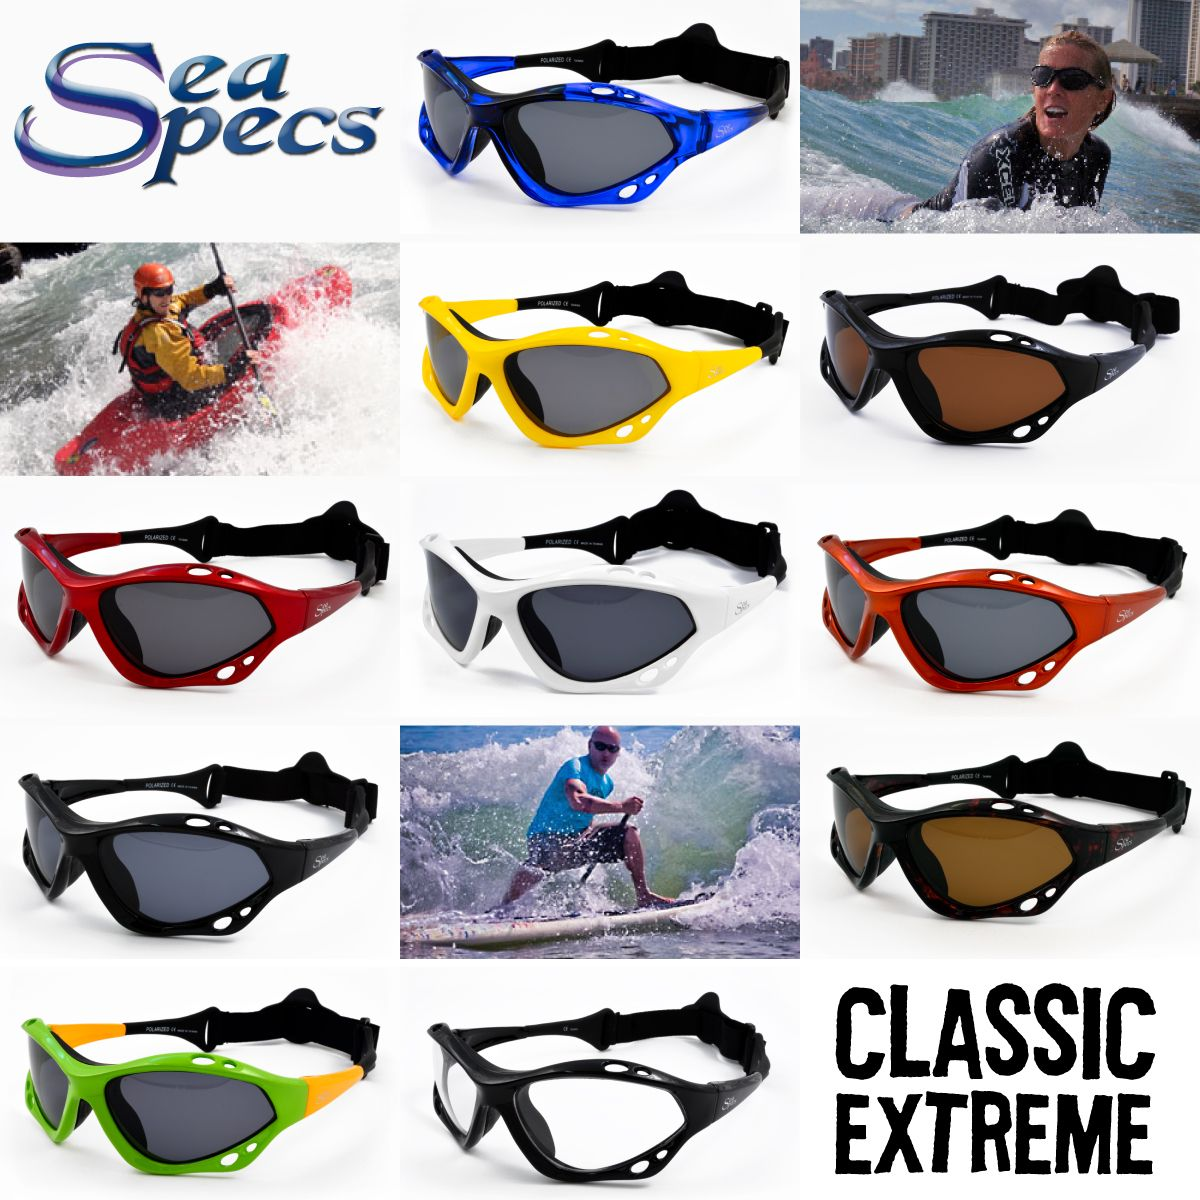 Seaspecs Classic Specs Buy 2 Get 1 Free Www Seaspecs Com Floating Sunglasses Buy Sunglasses Classic Specs